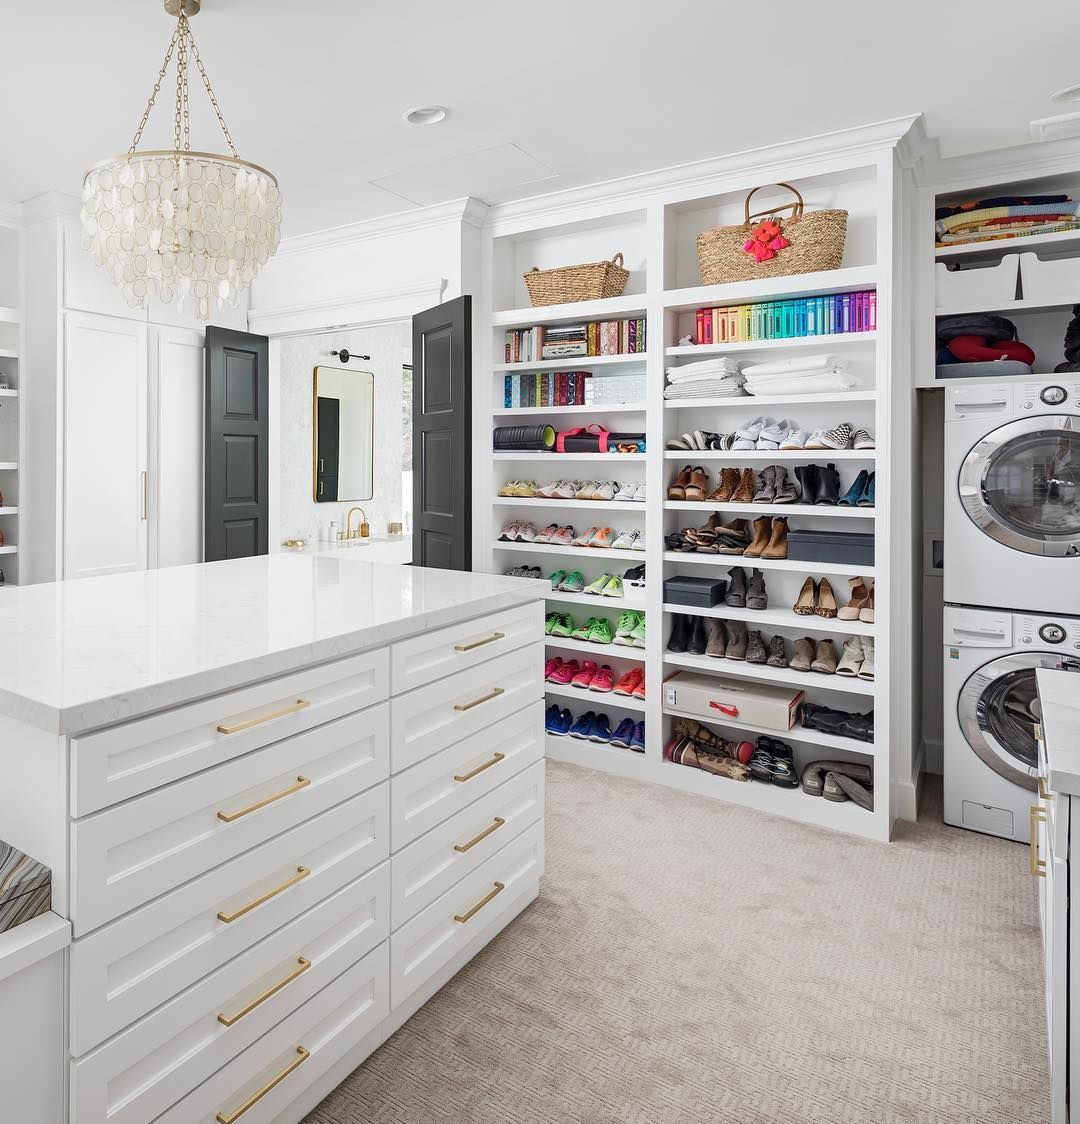 Brad Leavitt On Instagram Every Master Closet Needs Its Own Washer And Dryer As Well As A Mul Master Closet Laundry Room Closet Luxury Bathroom Master Baths